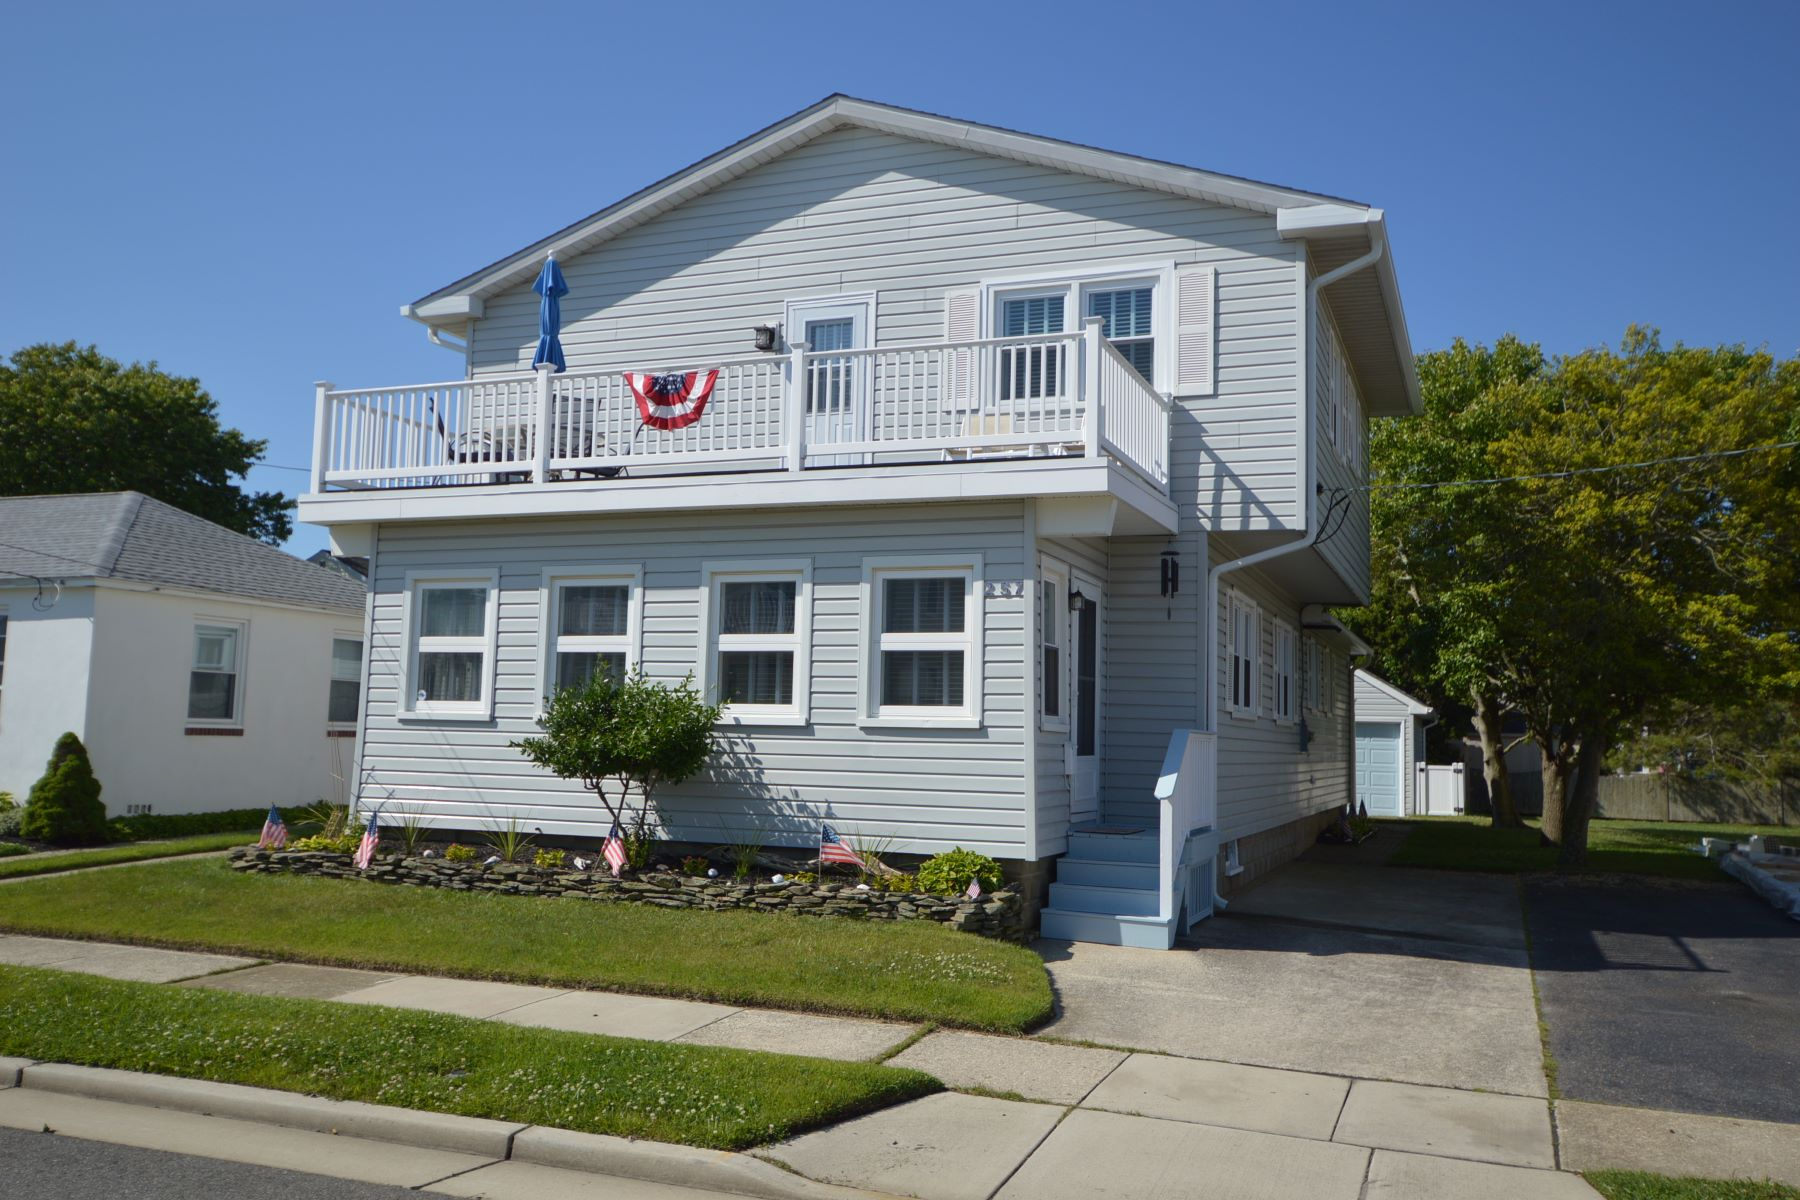 Single Family Home for Rent at Convenient Location 257 86th Street, Stone Harbor, New Jersey 08247 United States